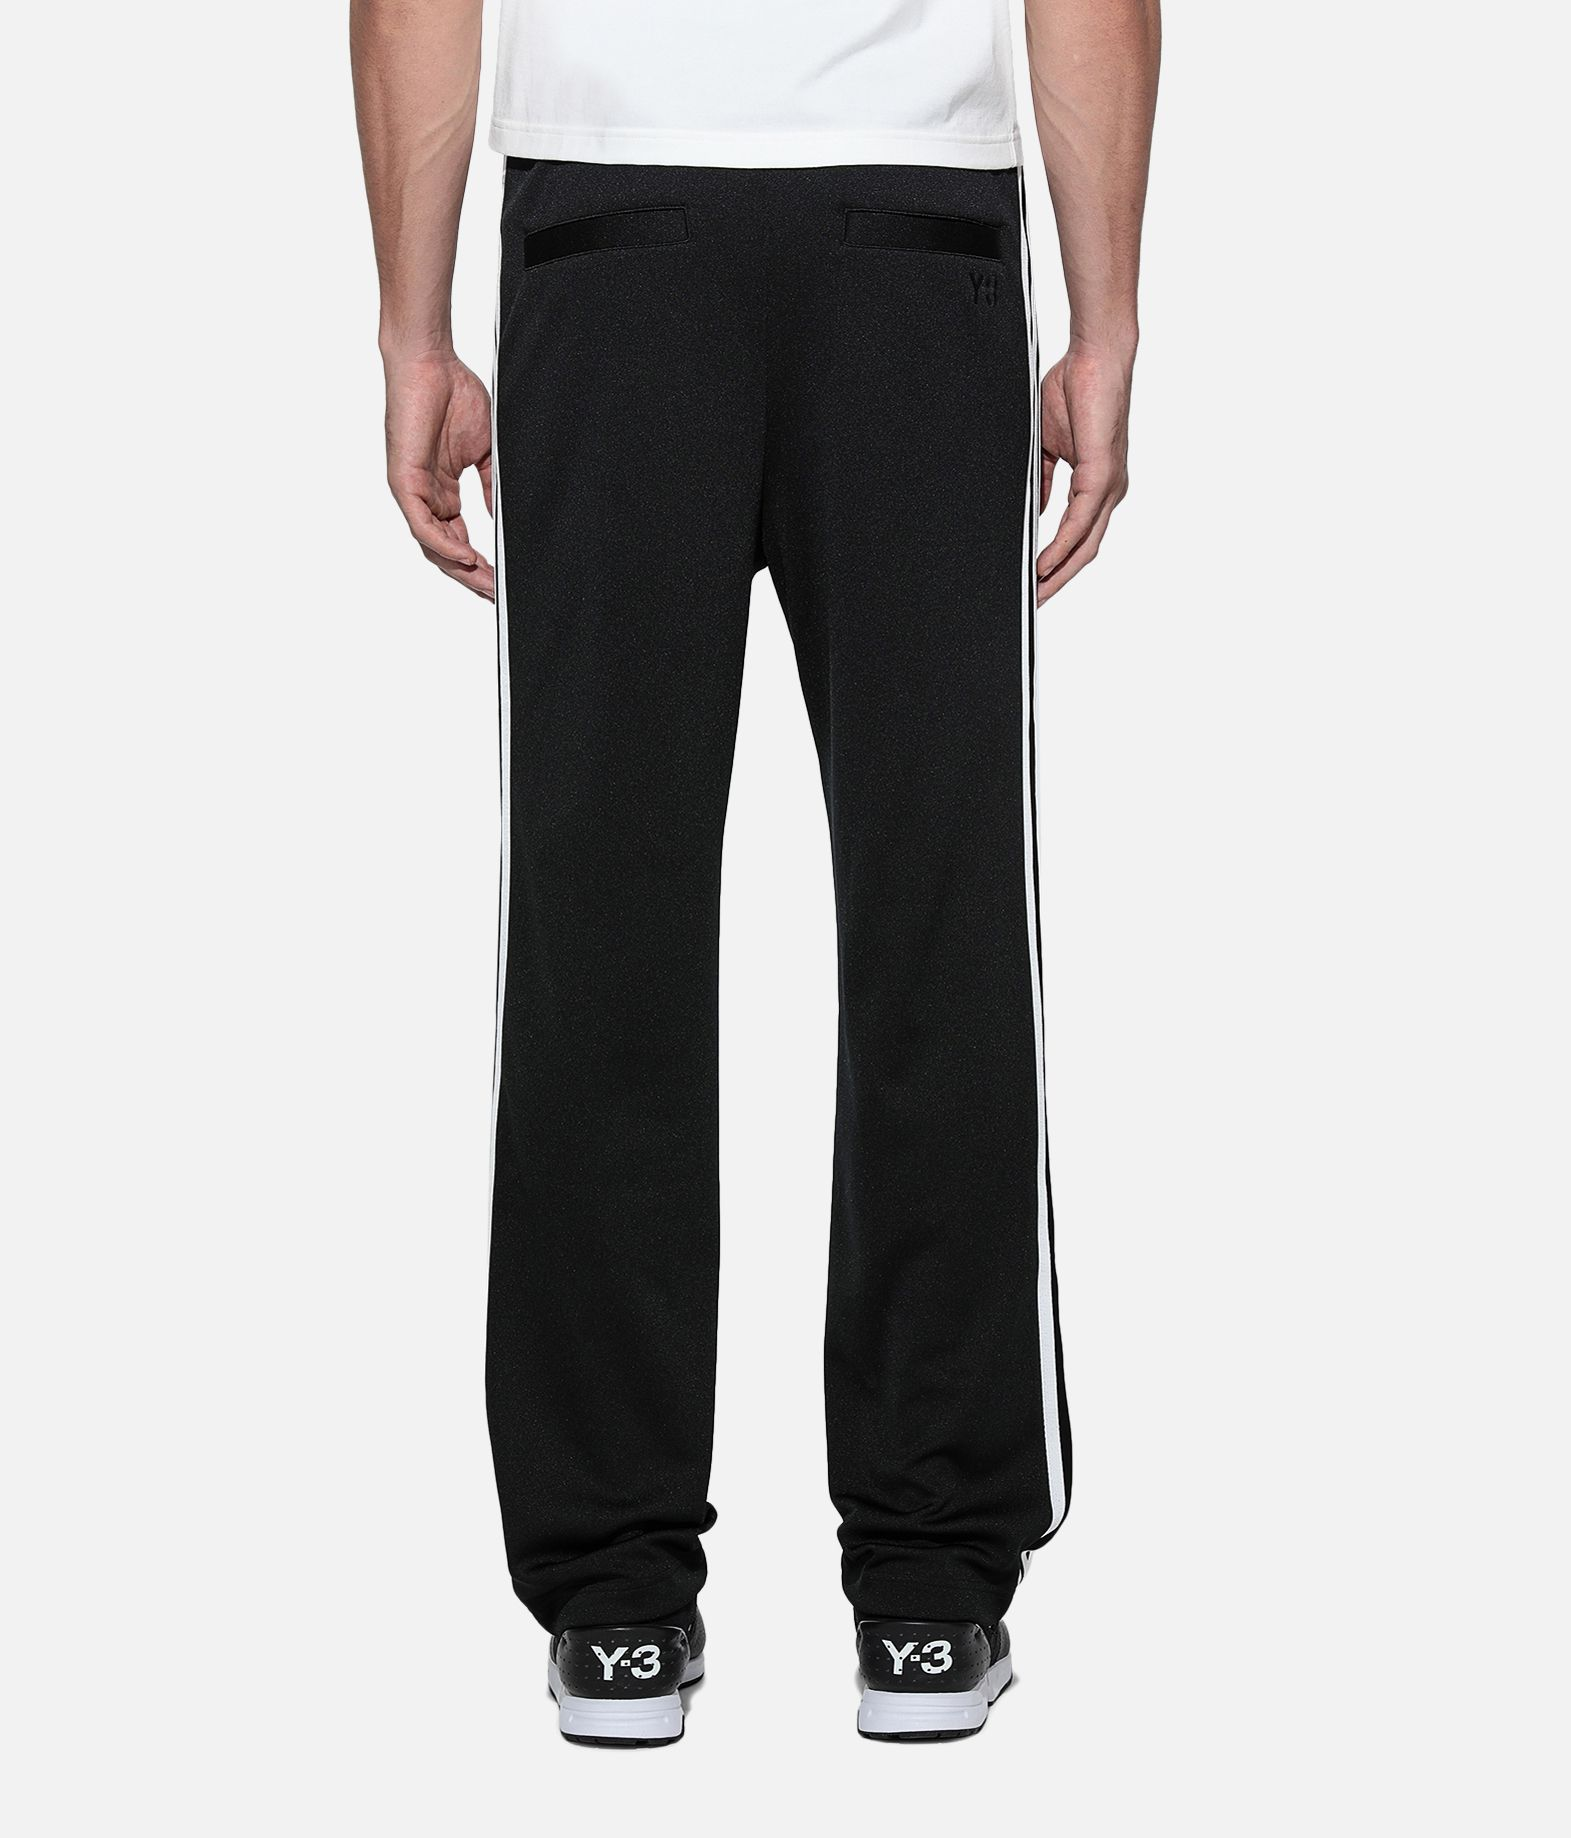 Y-3 Y-3 3-Stripes Track Pants Tracksuit bottoms Man d